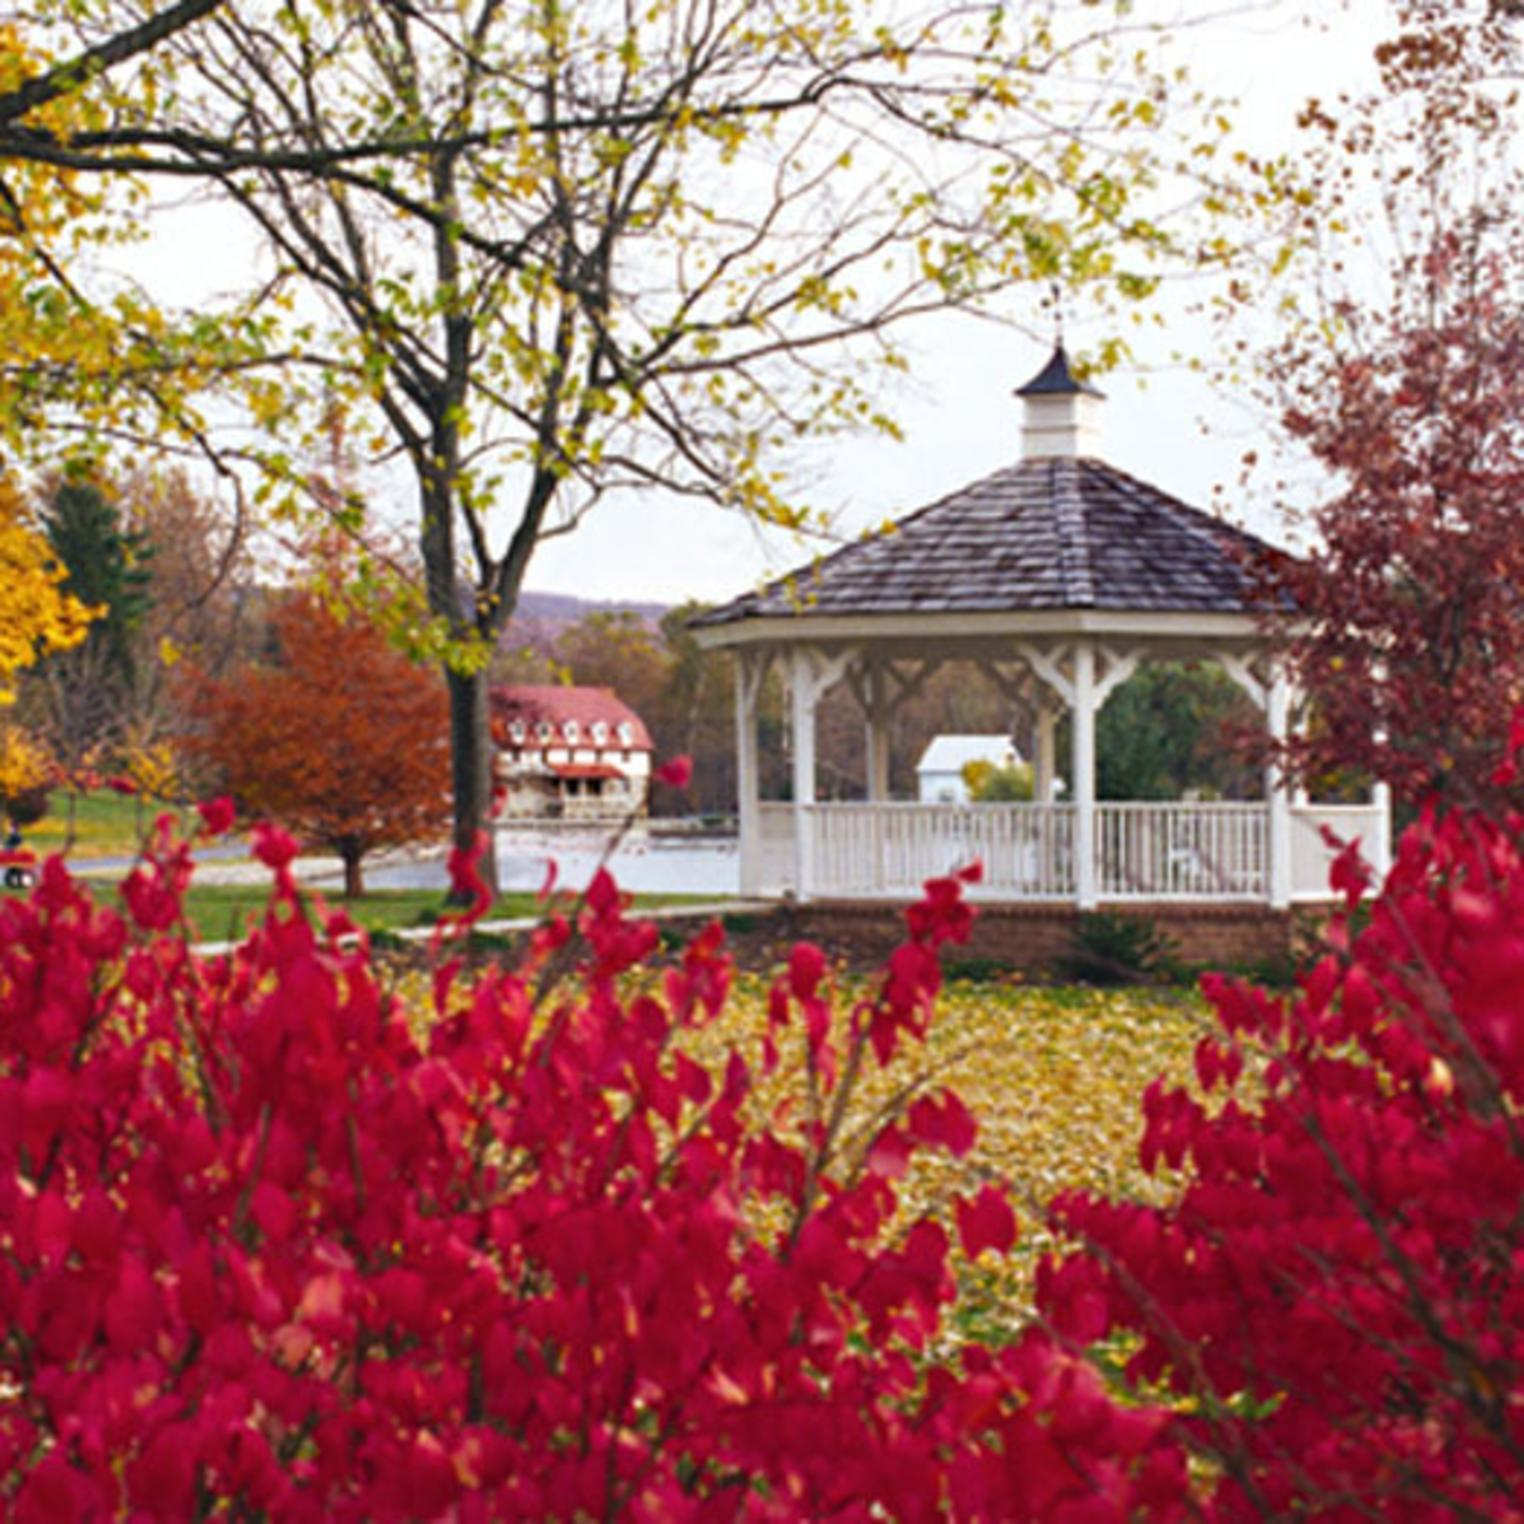 The Gazebo at Children's Lake